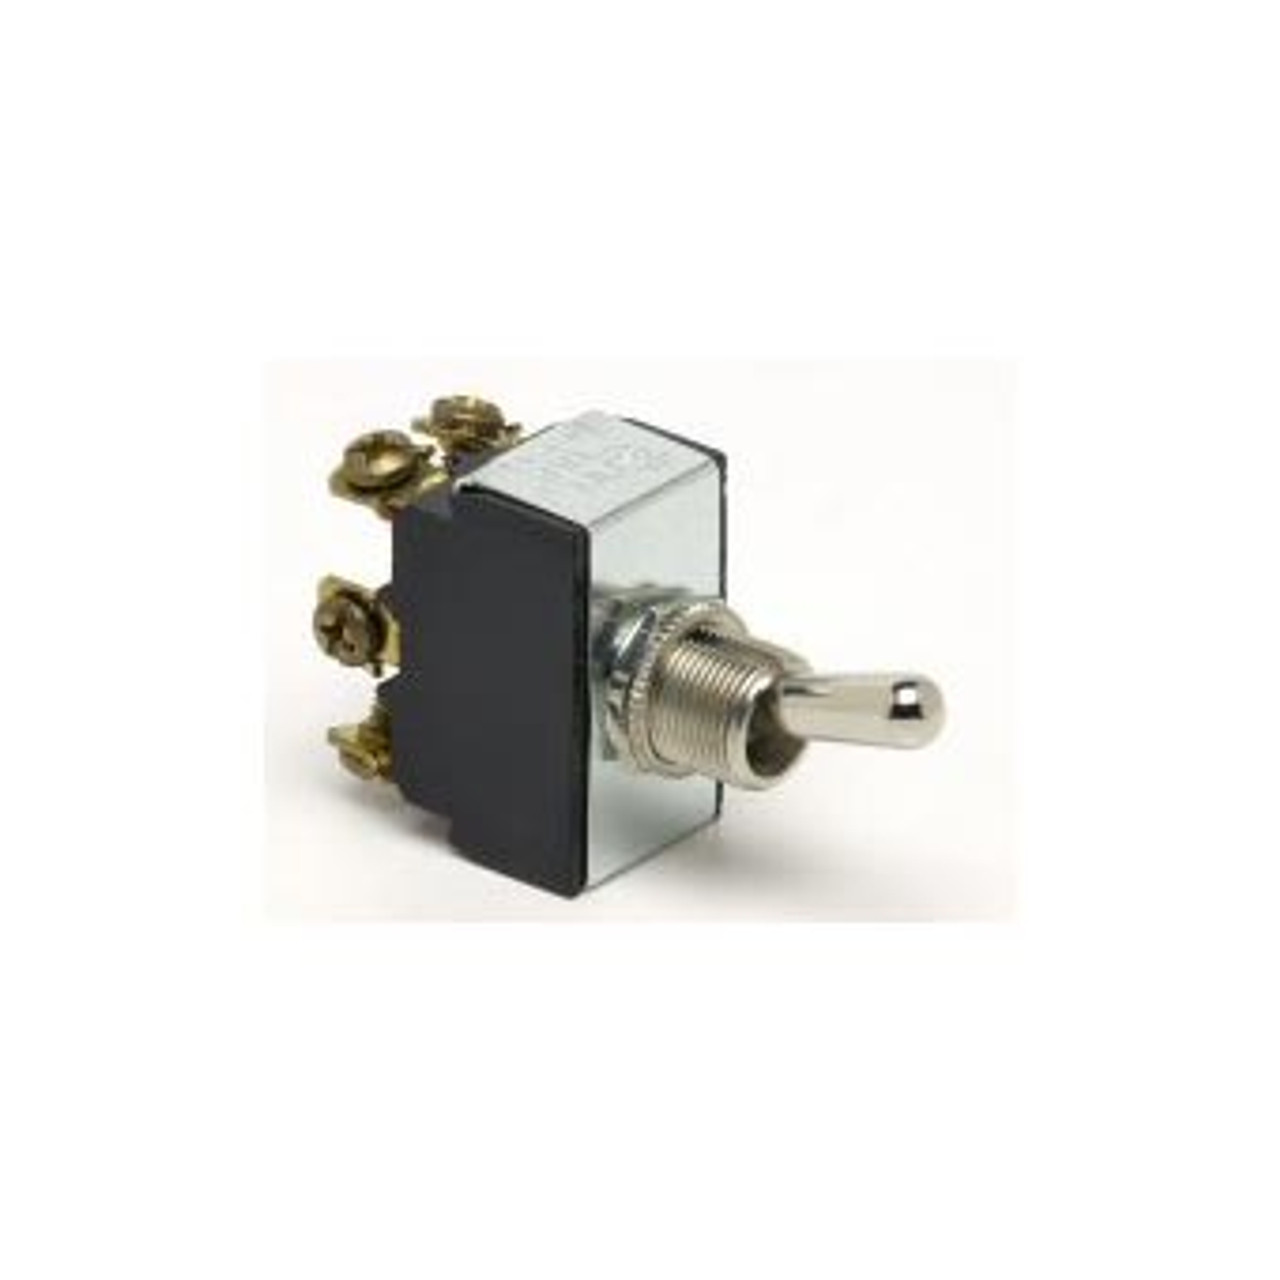 TOGGLE SWIT ON-OFF-ON 6S DPDT 6 SCREW TERMINALS